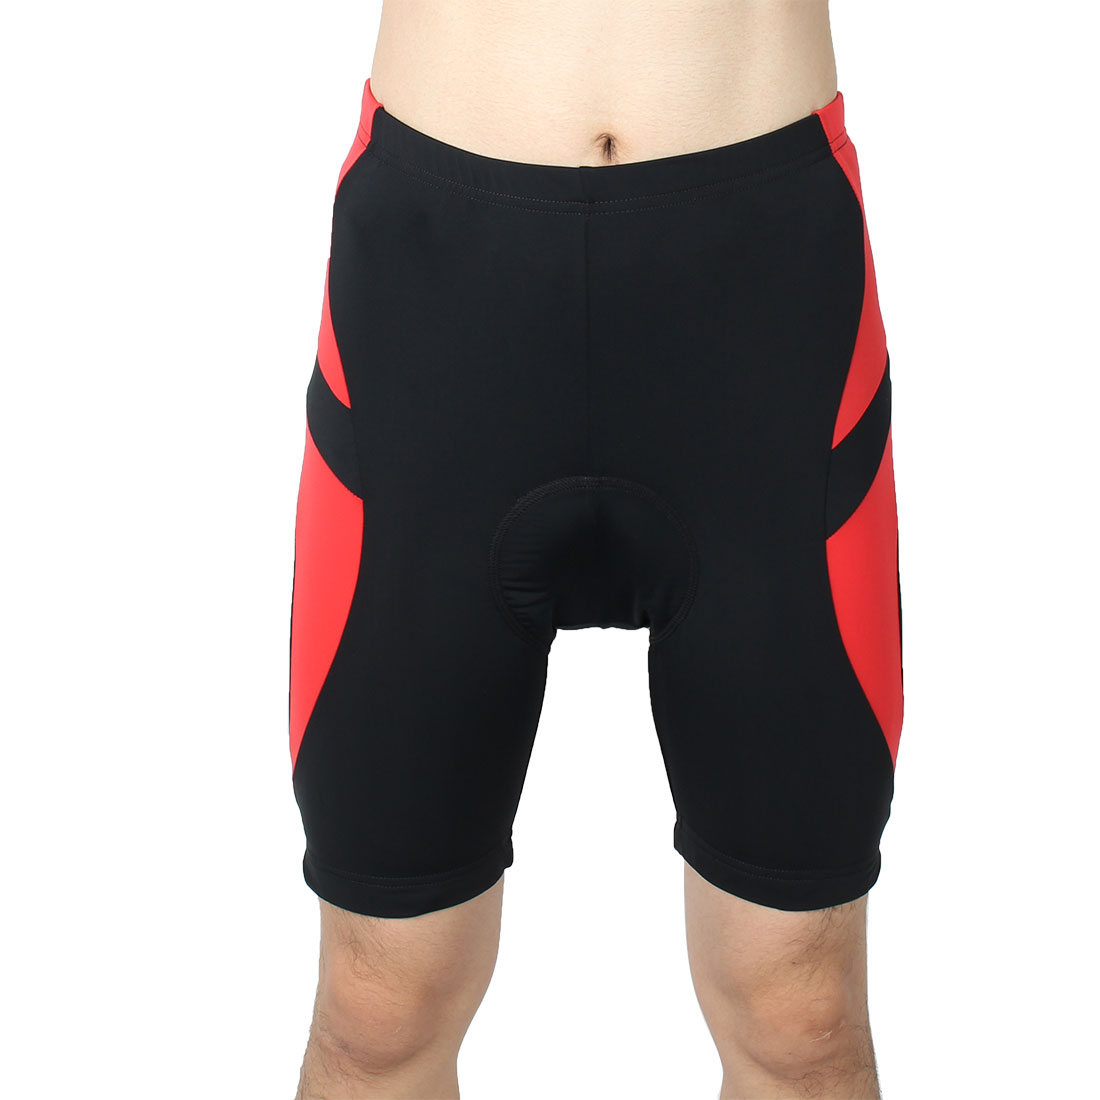 Men Outdoor Bicycle Underwear 3D Padded Breathable Cycling Sport Shorts Half Pants Black Red L (W 36)